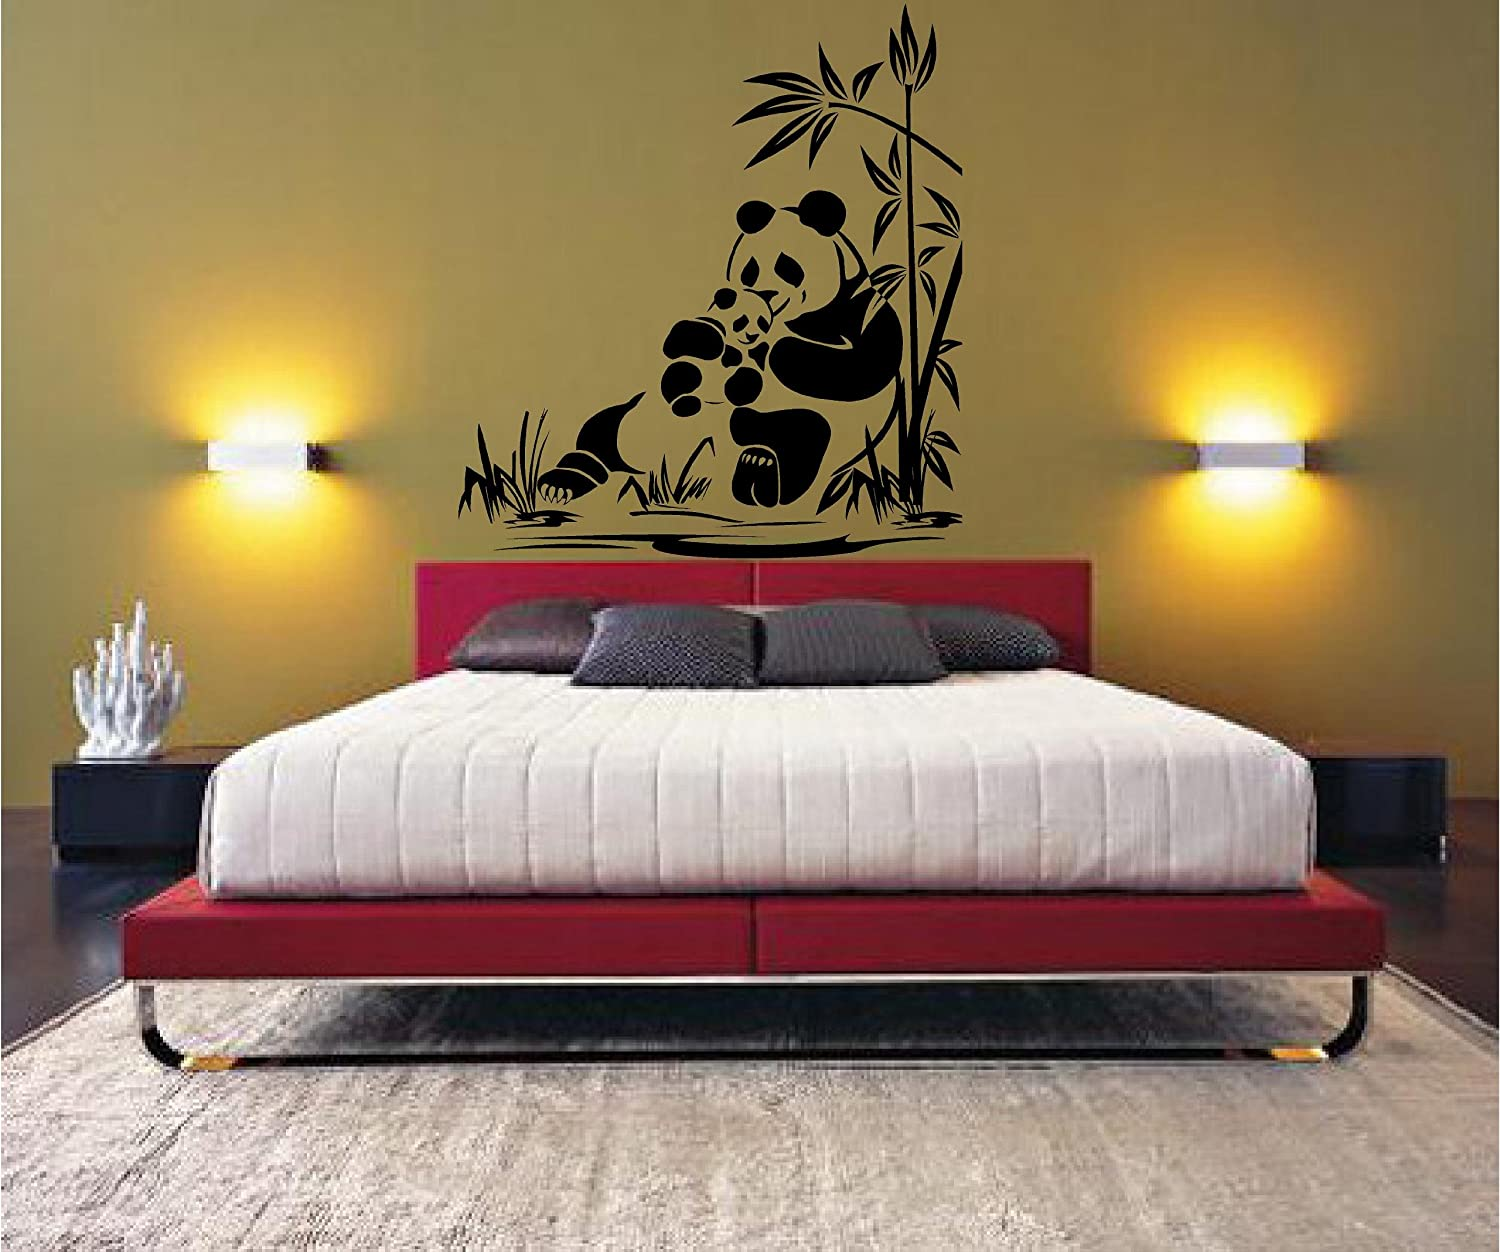 amazon com panda wall decal sticker home decor 32 amazon com panda wall decal sticker home decor 32